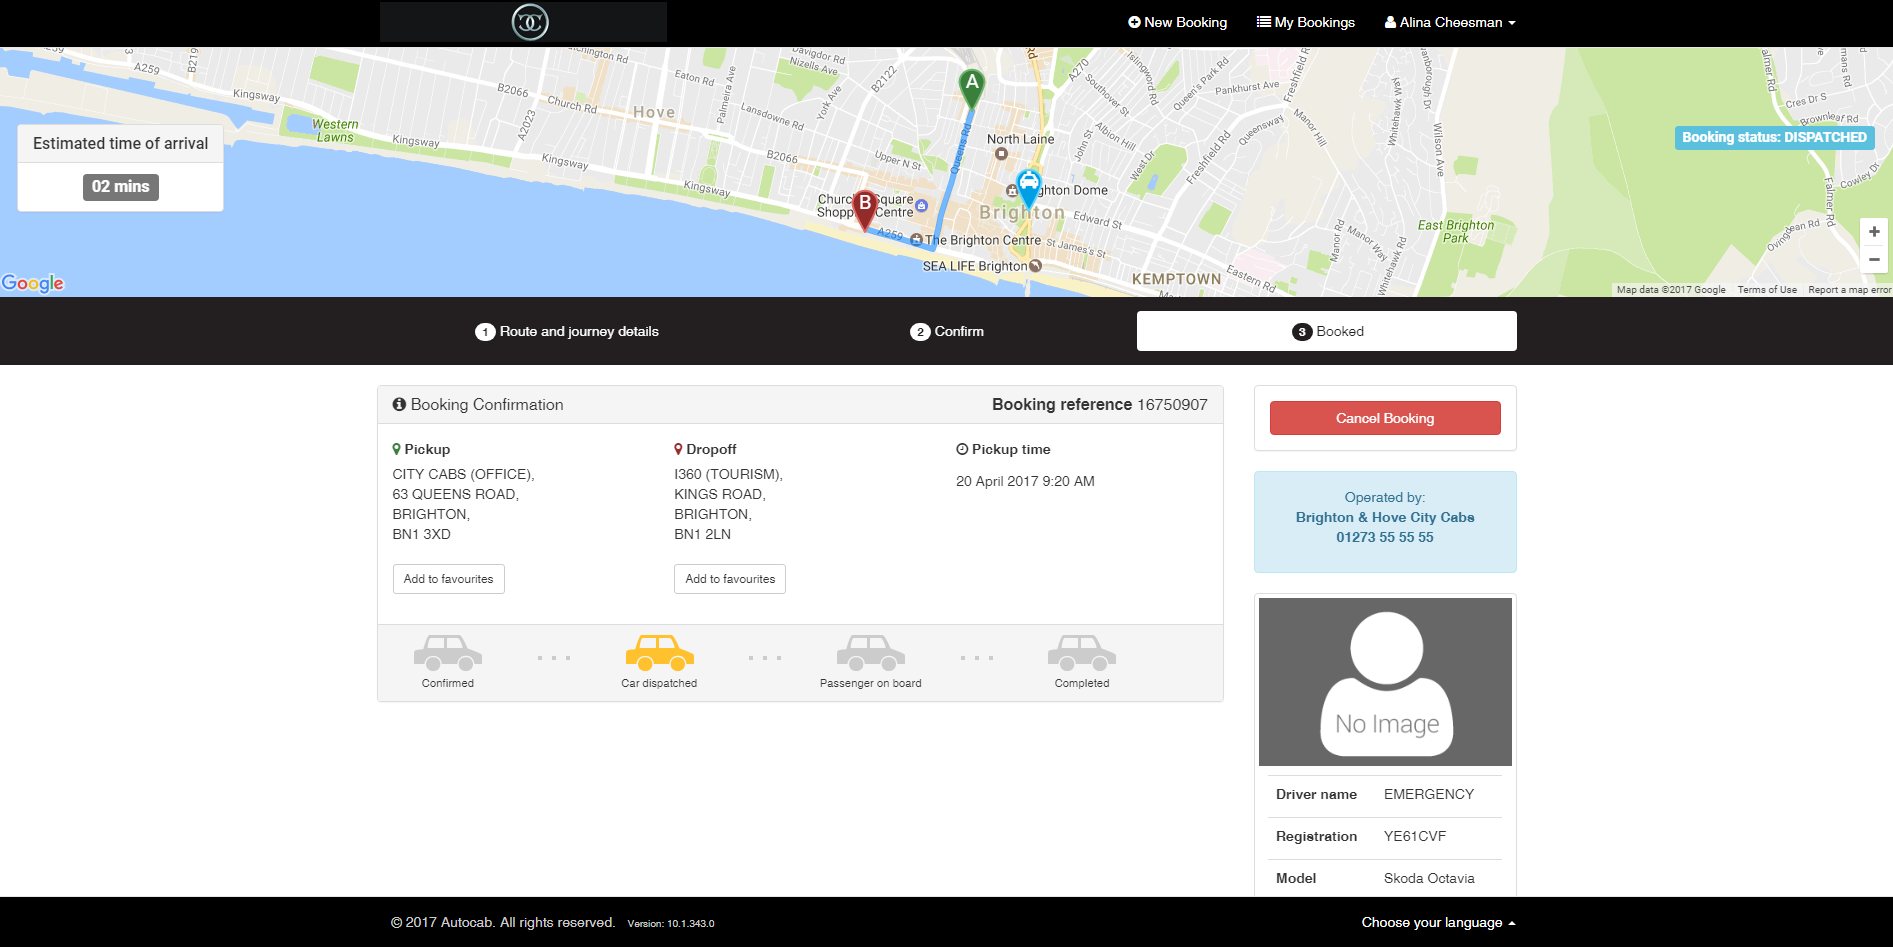 Car despatched & driver profile/ GPS live tracking on map